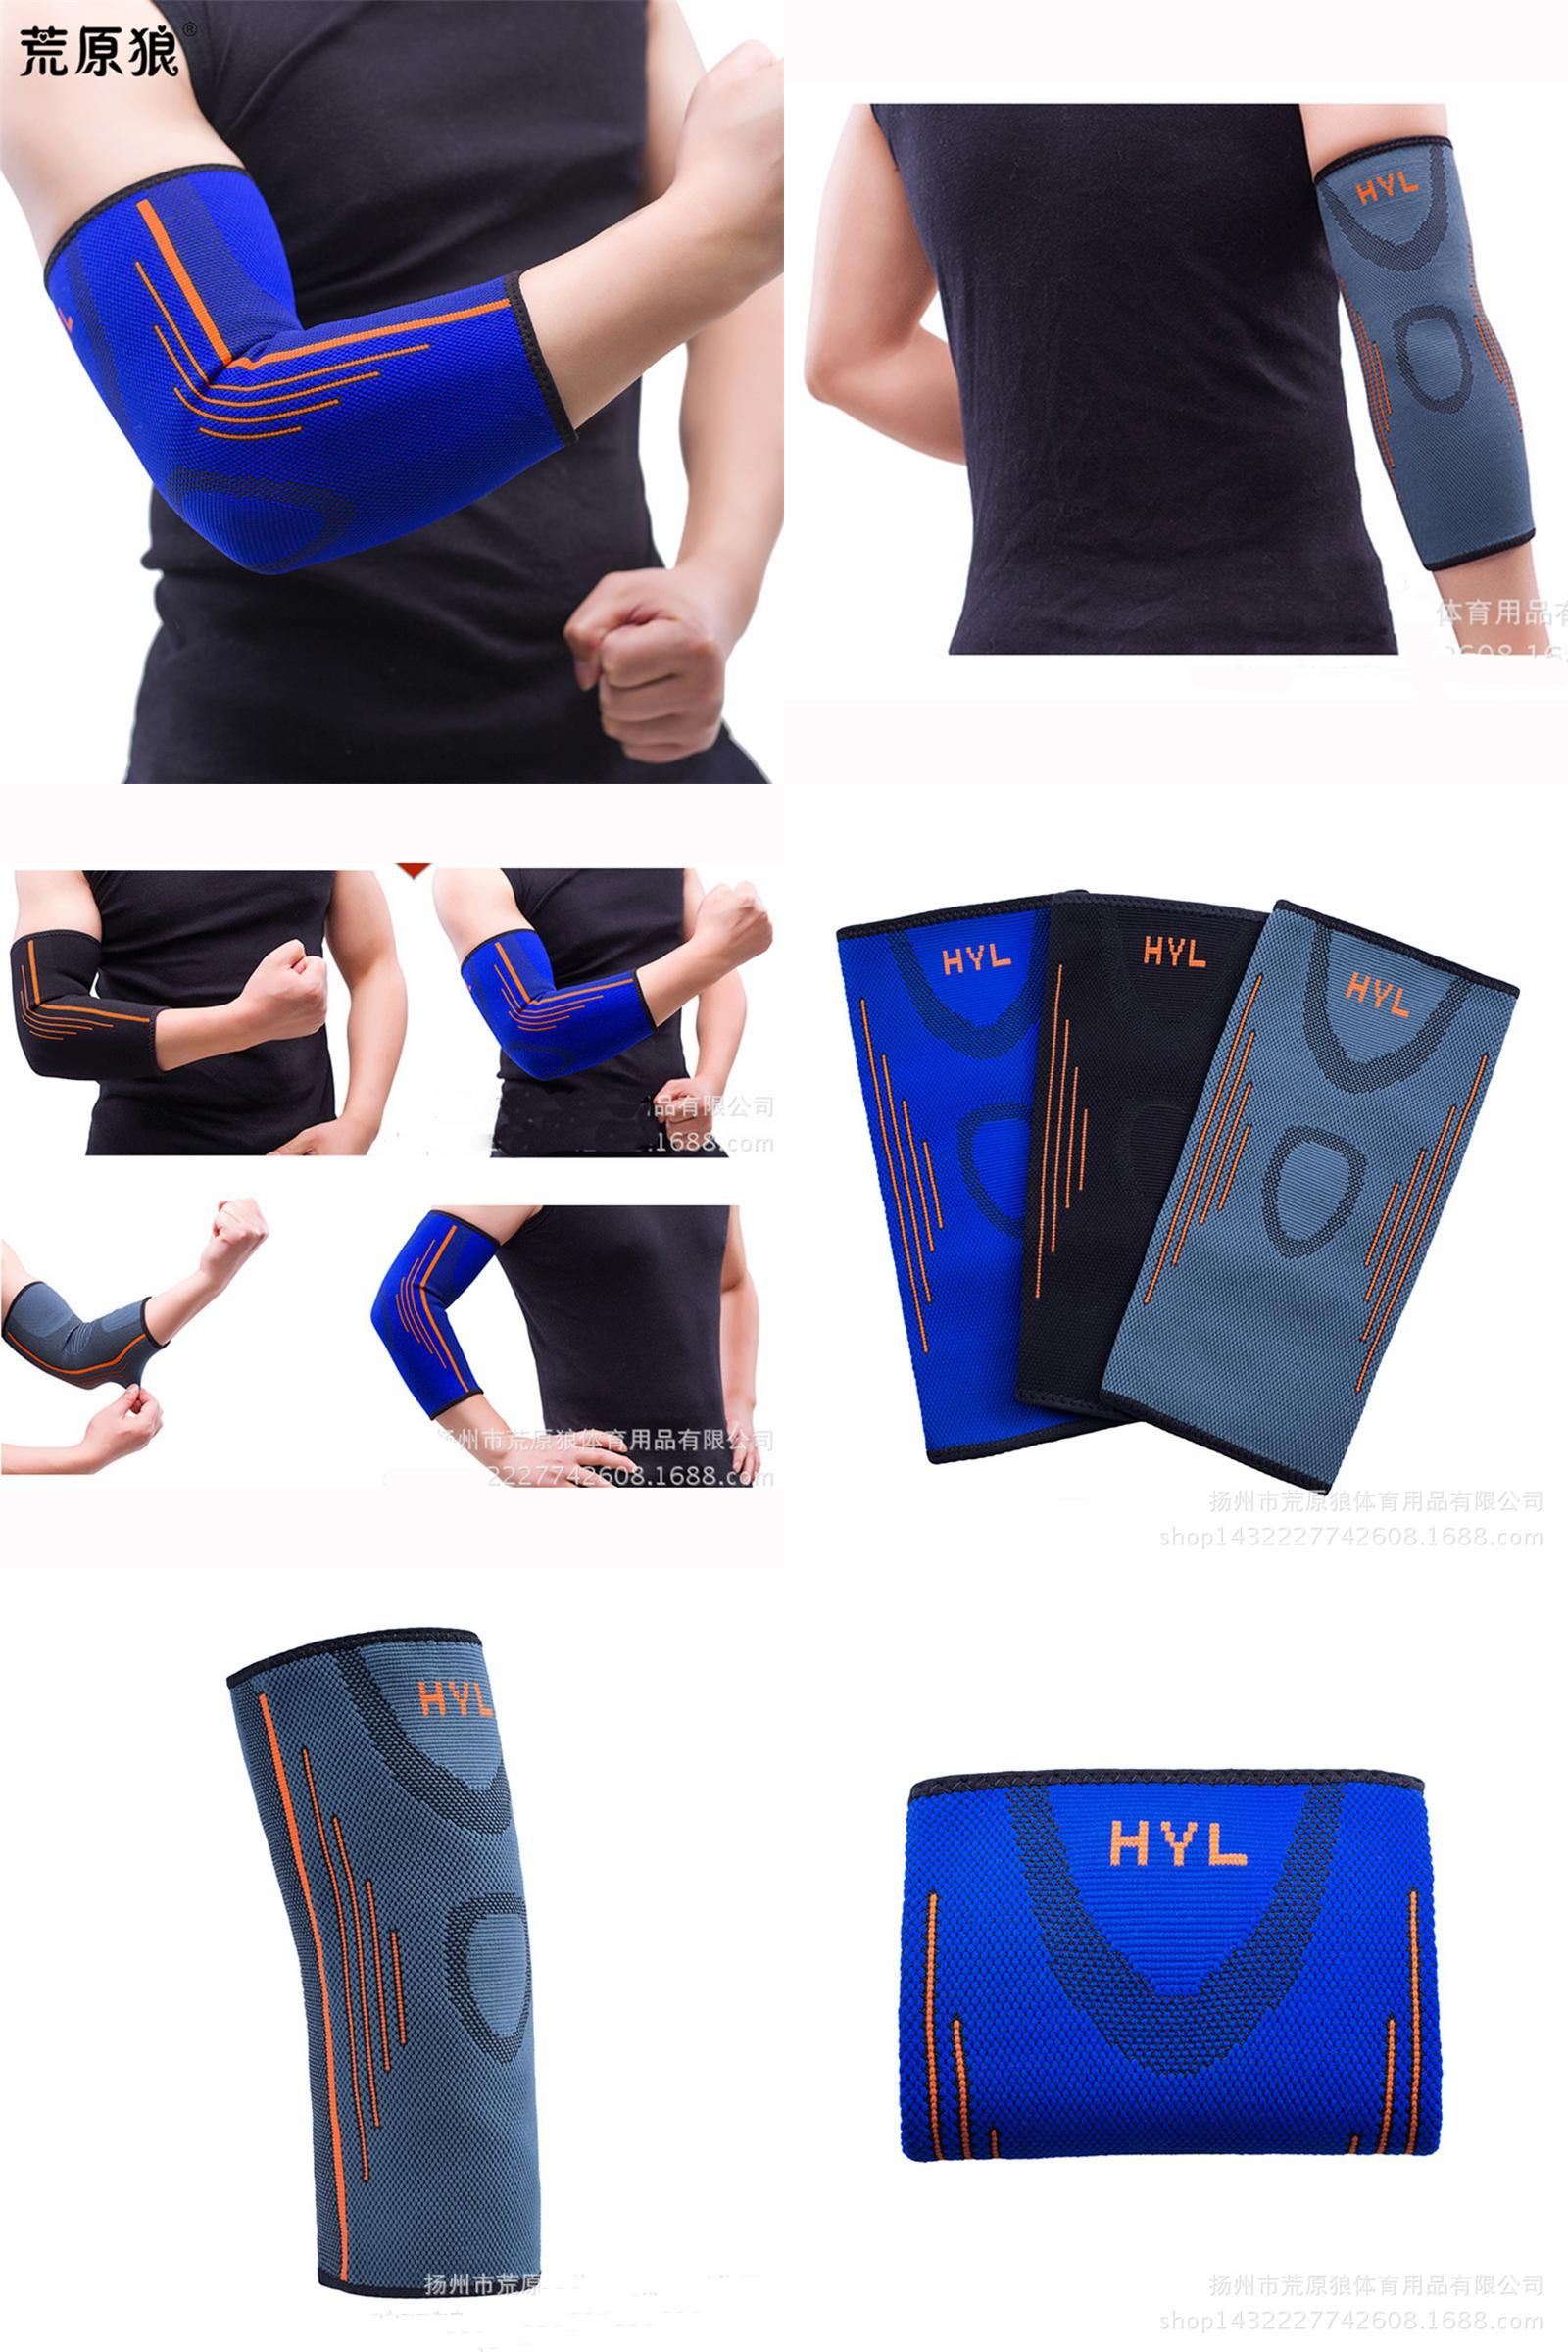 Breathable Compression Elbow Pads For Cycling In 2020 Basketball Arm Sleeves Cycling Arm Warmer Compression Arm Sleeves